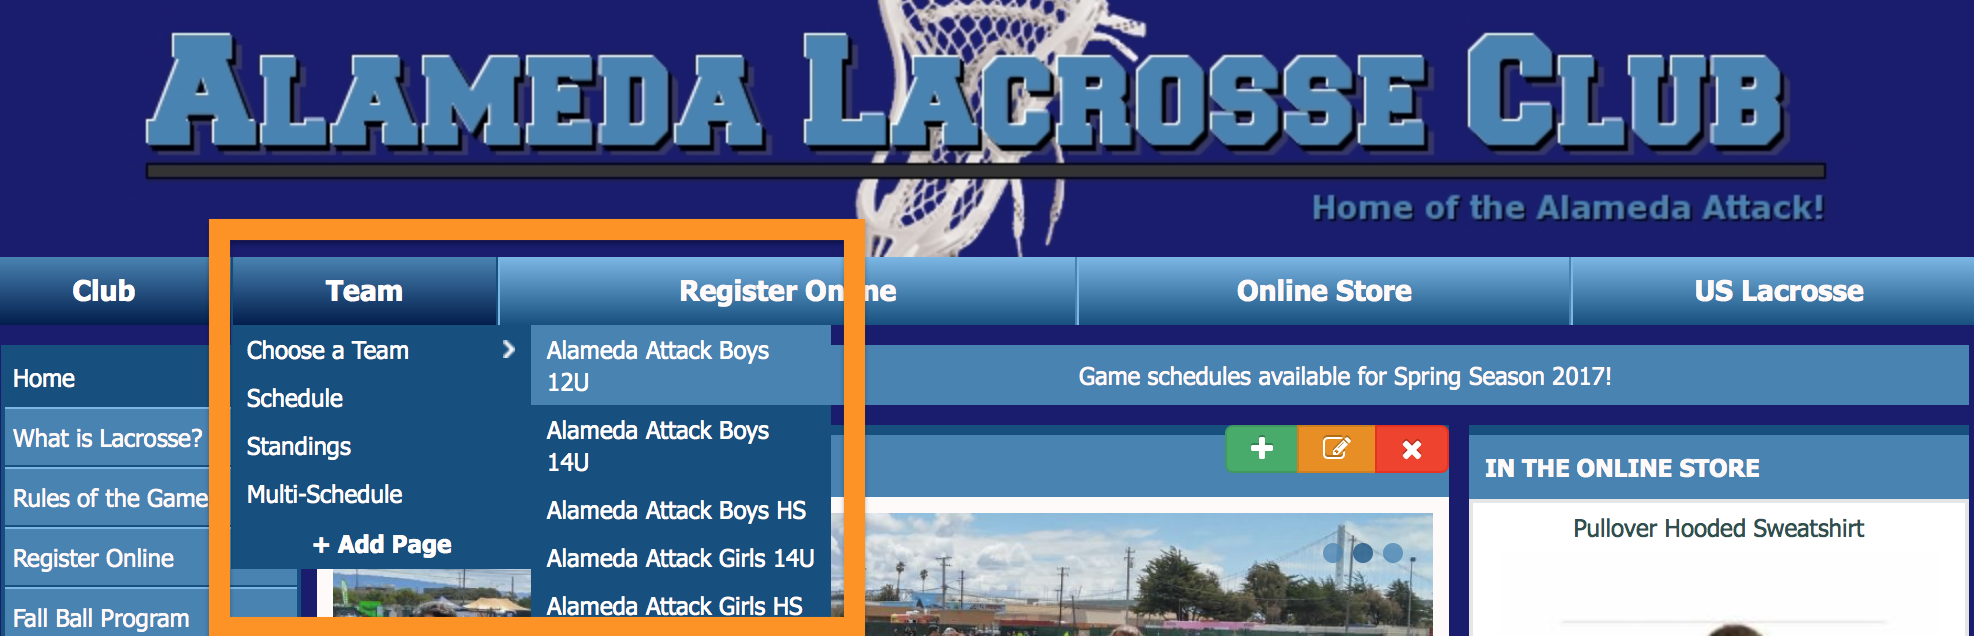 Locate team pages under the Alameda Lacrosse logo